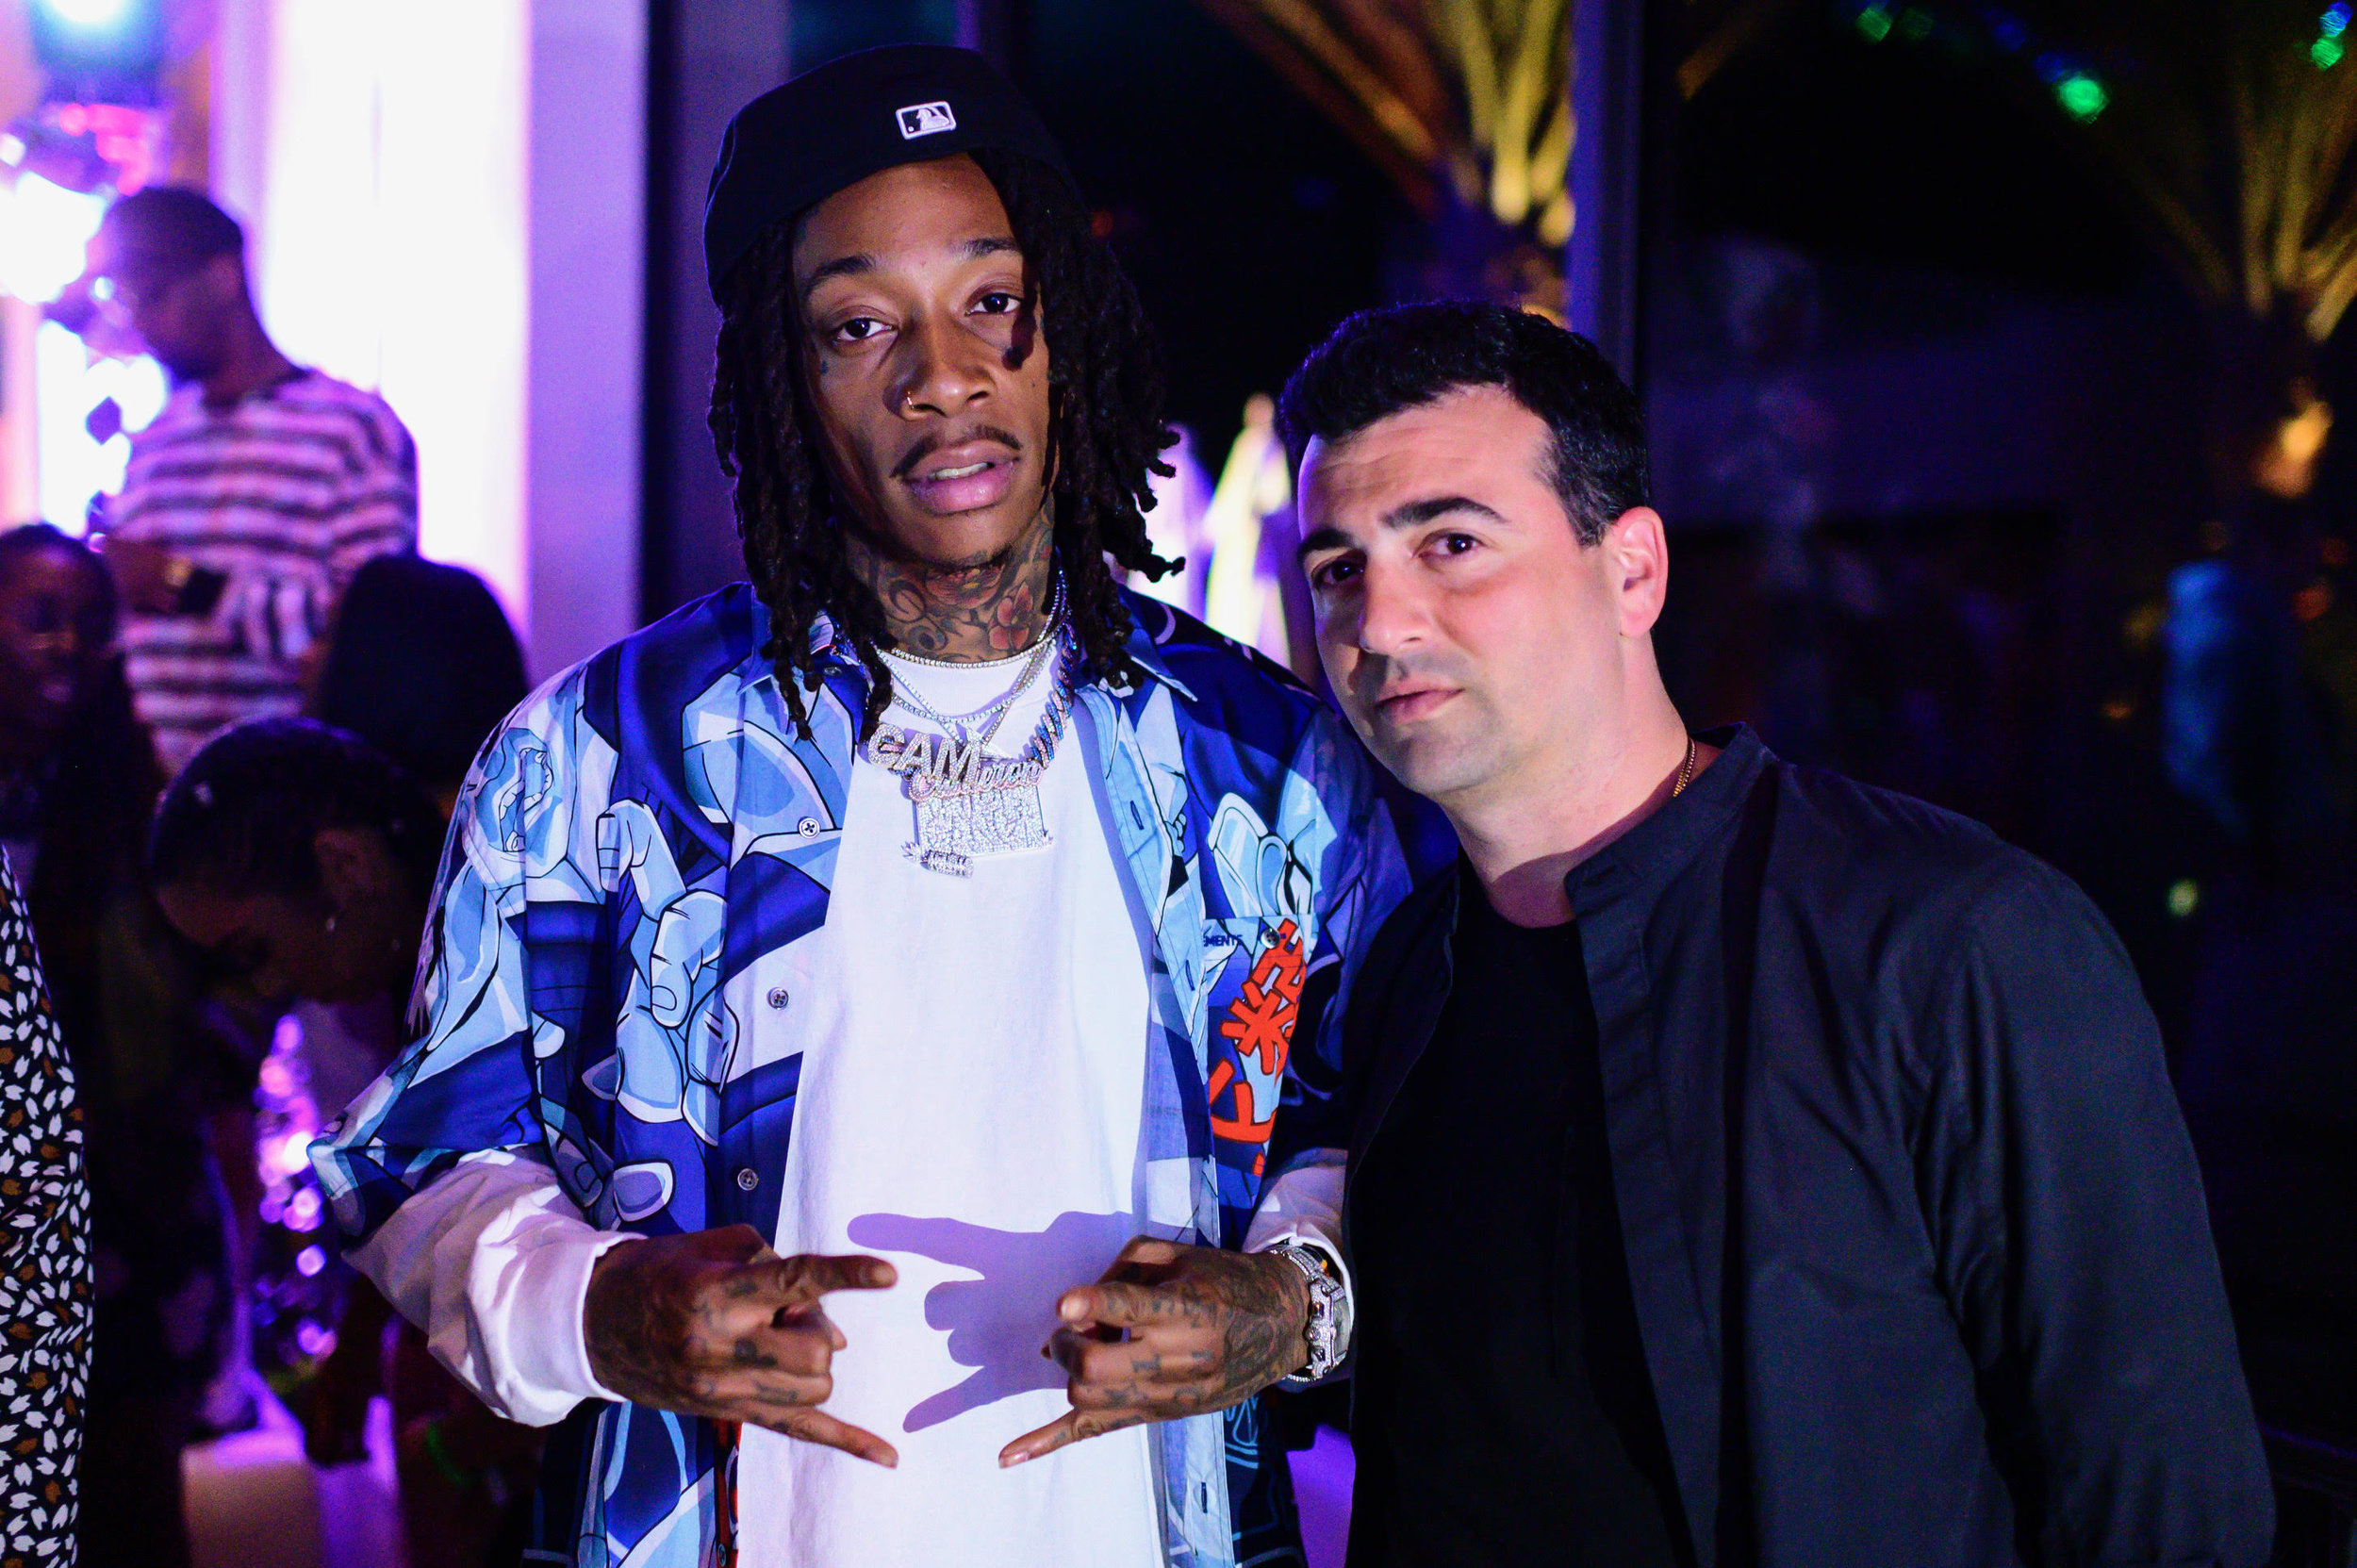 Wiz Khalifa with The h.wood Group's John Terzian at the Poppy x Google event in the Coachella Valley.